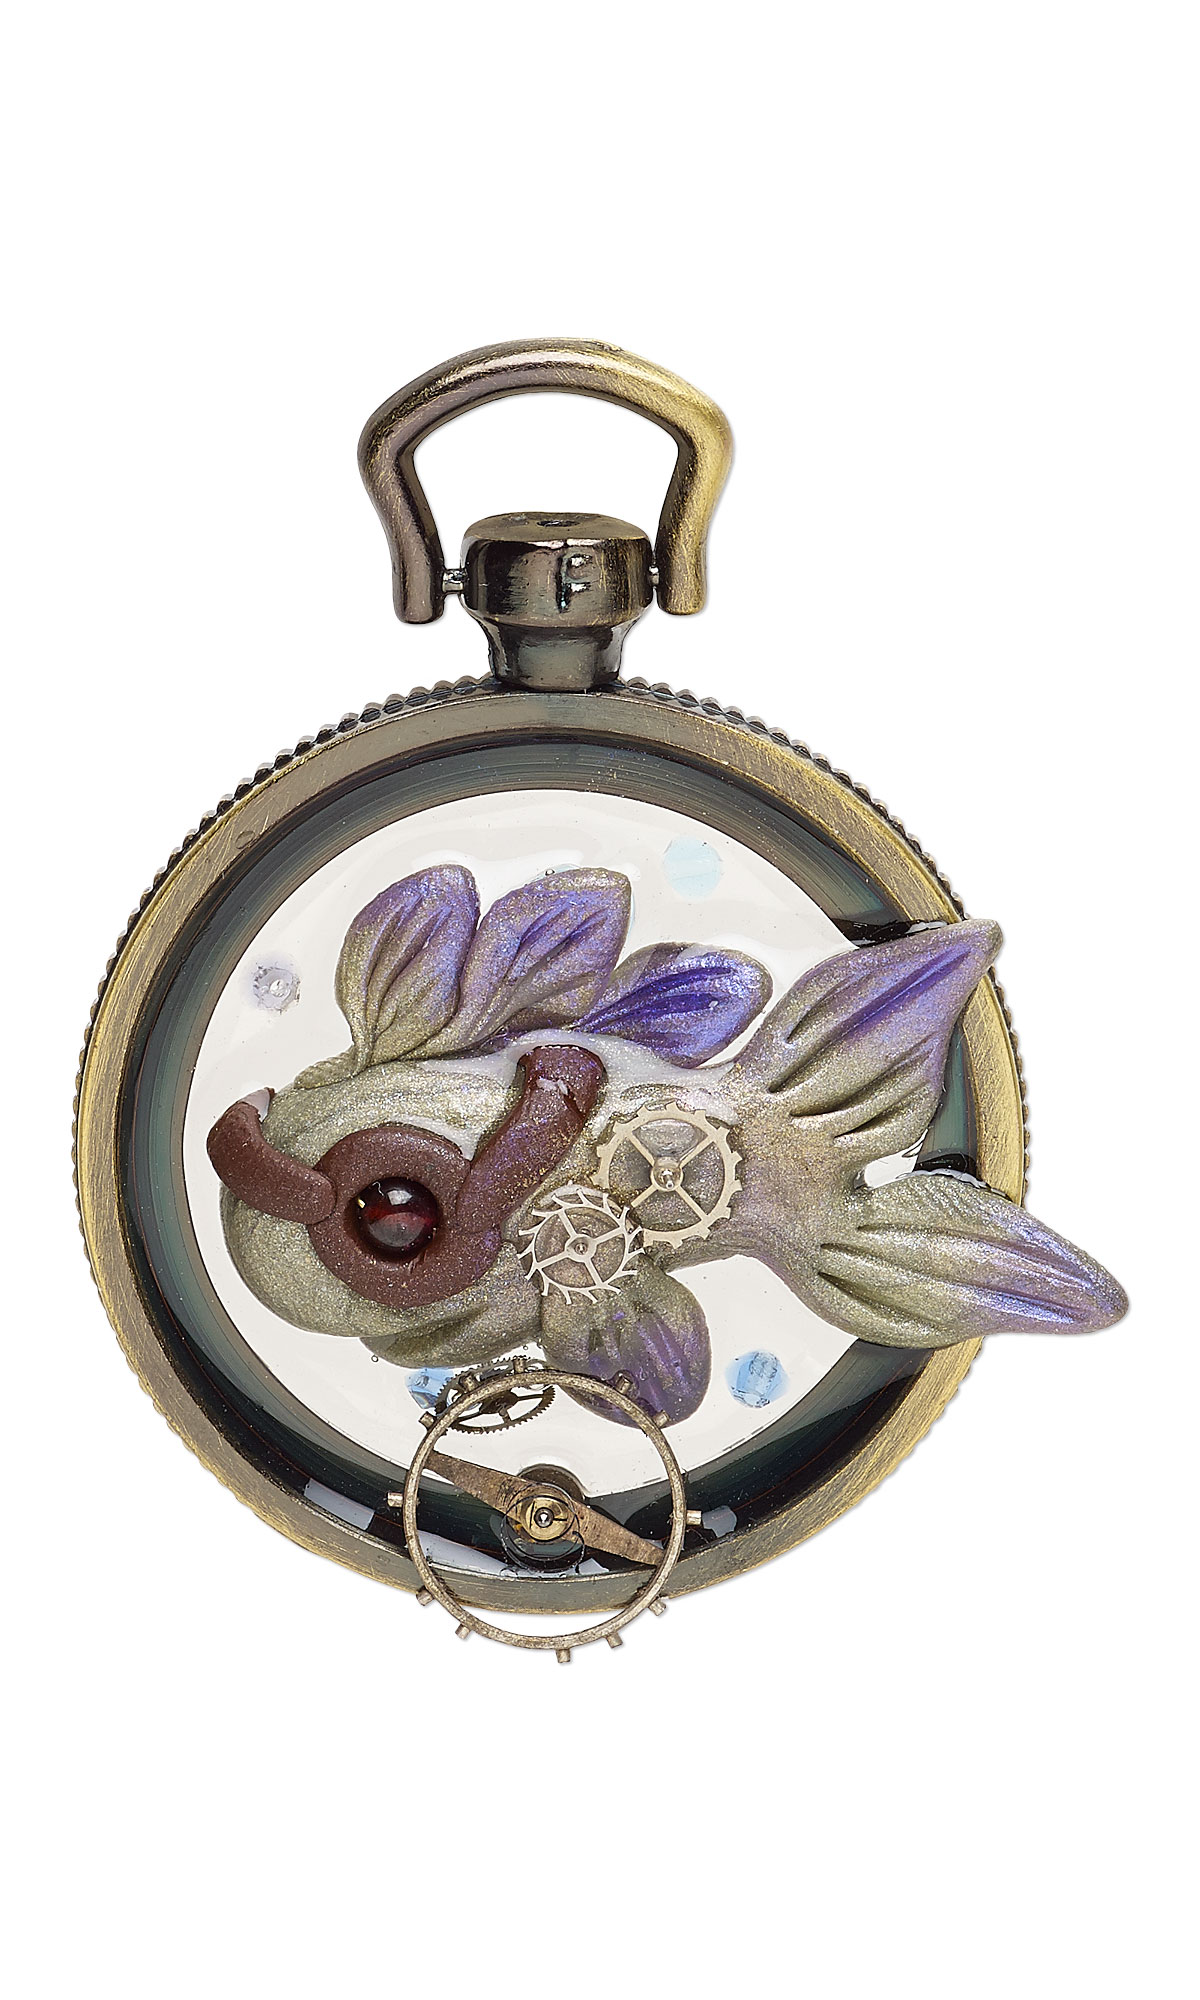 Jewelry Design Pendant With Watch Components Premo Sculpey